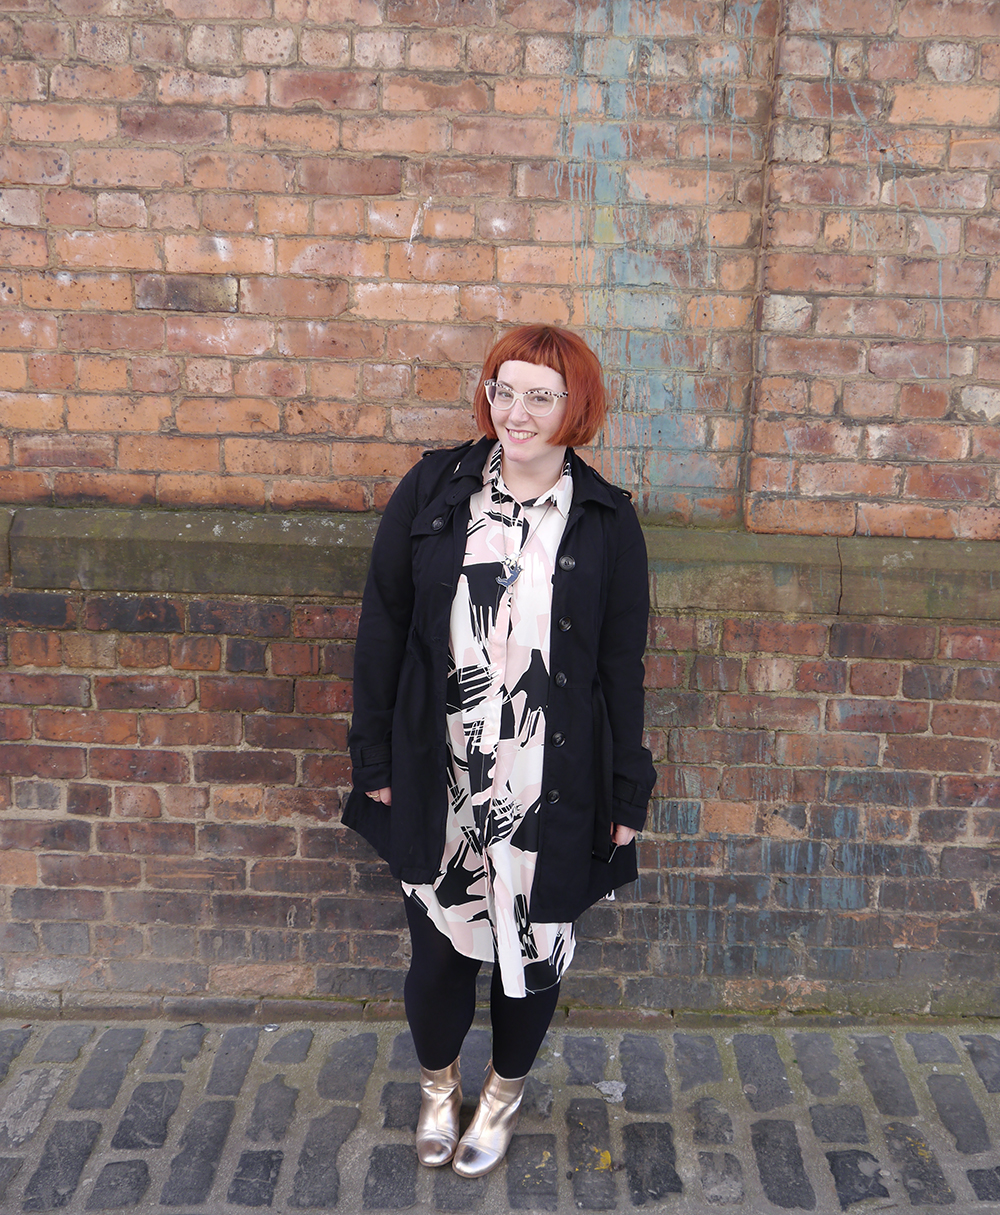 what Helen wore, ootd, Scottish blogger, Dundee blogger, blogging duo, Scottish street style, Glasgow street style, Monki shirt dress, Monki hand print dress, #monkistyle, internet shopping, online shoppin tips, shoppin online, how to shop online, Karen Mabon cat necklace, Karen Mabon jewellery, gold boots, easy to wear fashion, easy outfit, red head, micro fringe, ginger bob, Spex Pistols